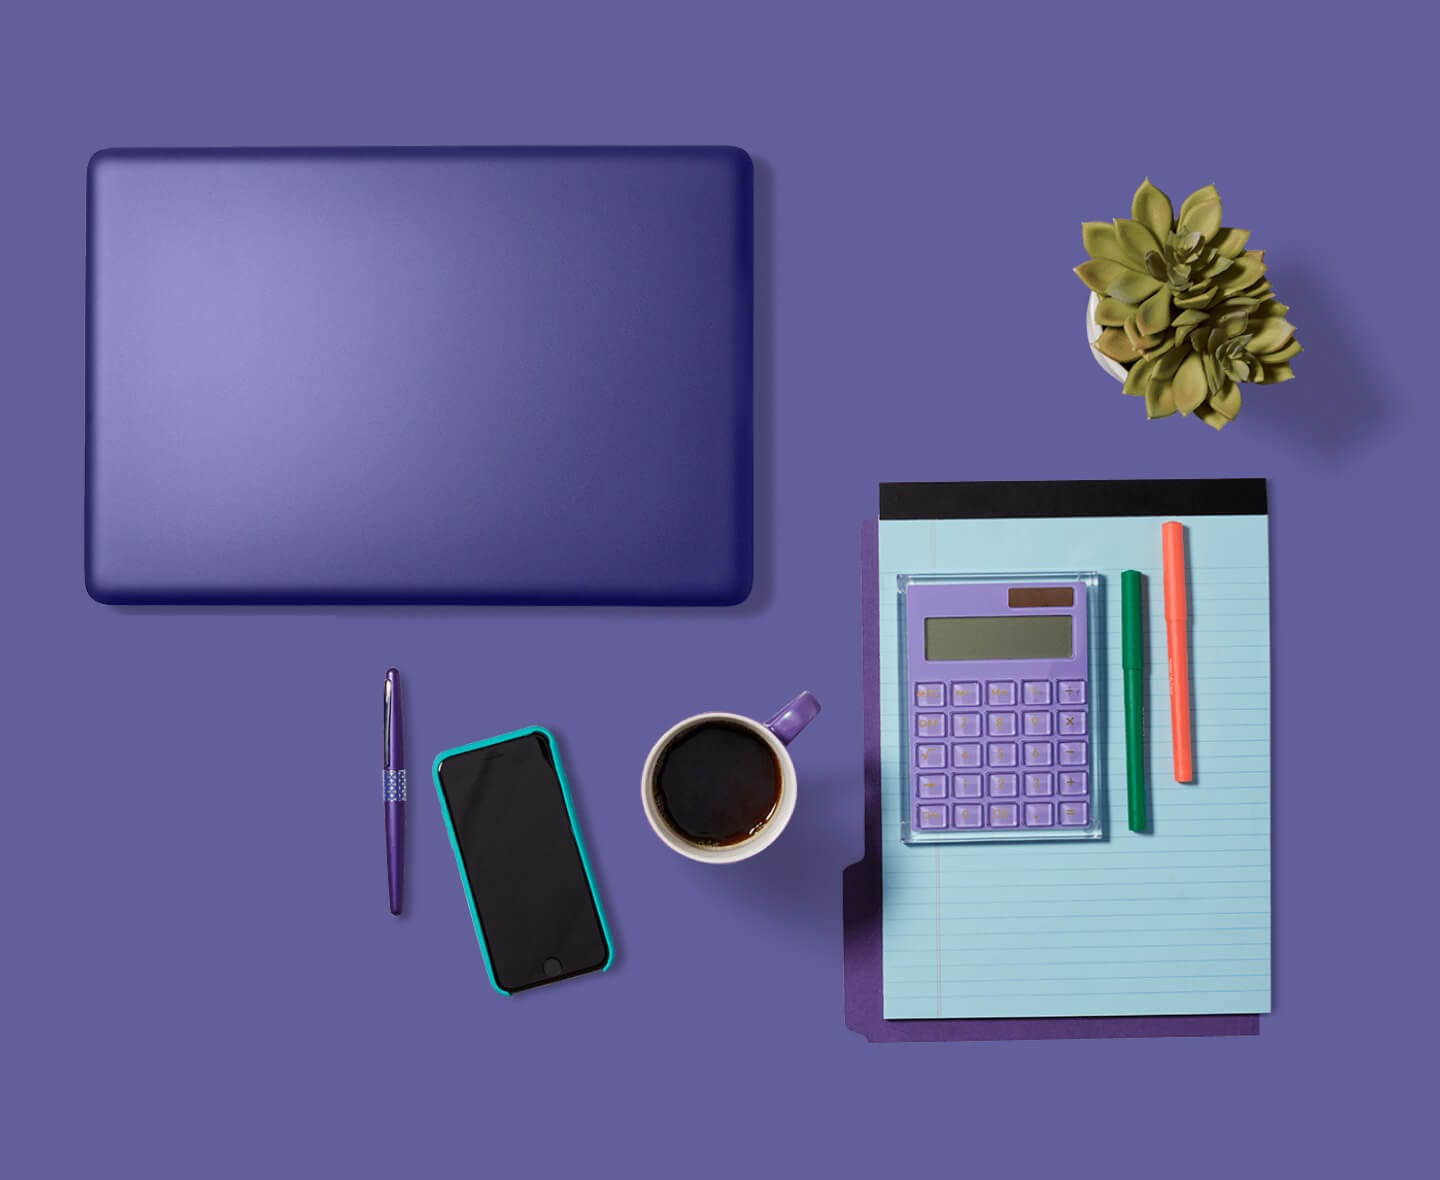 Panoramic view of laptop and office supplies